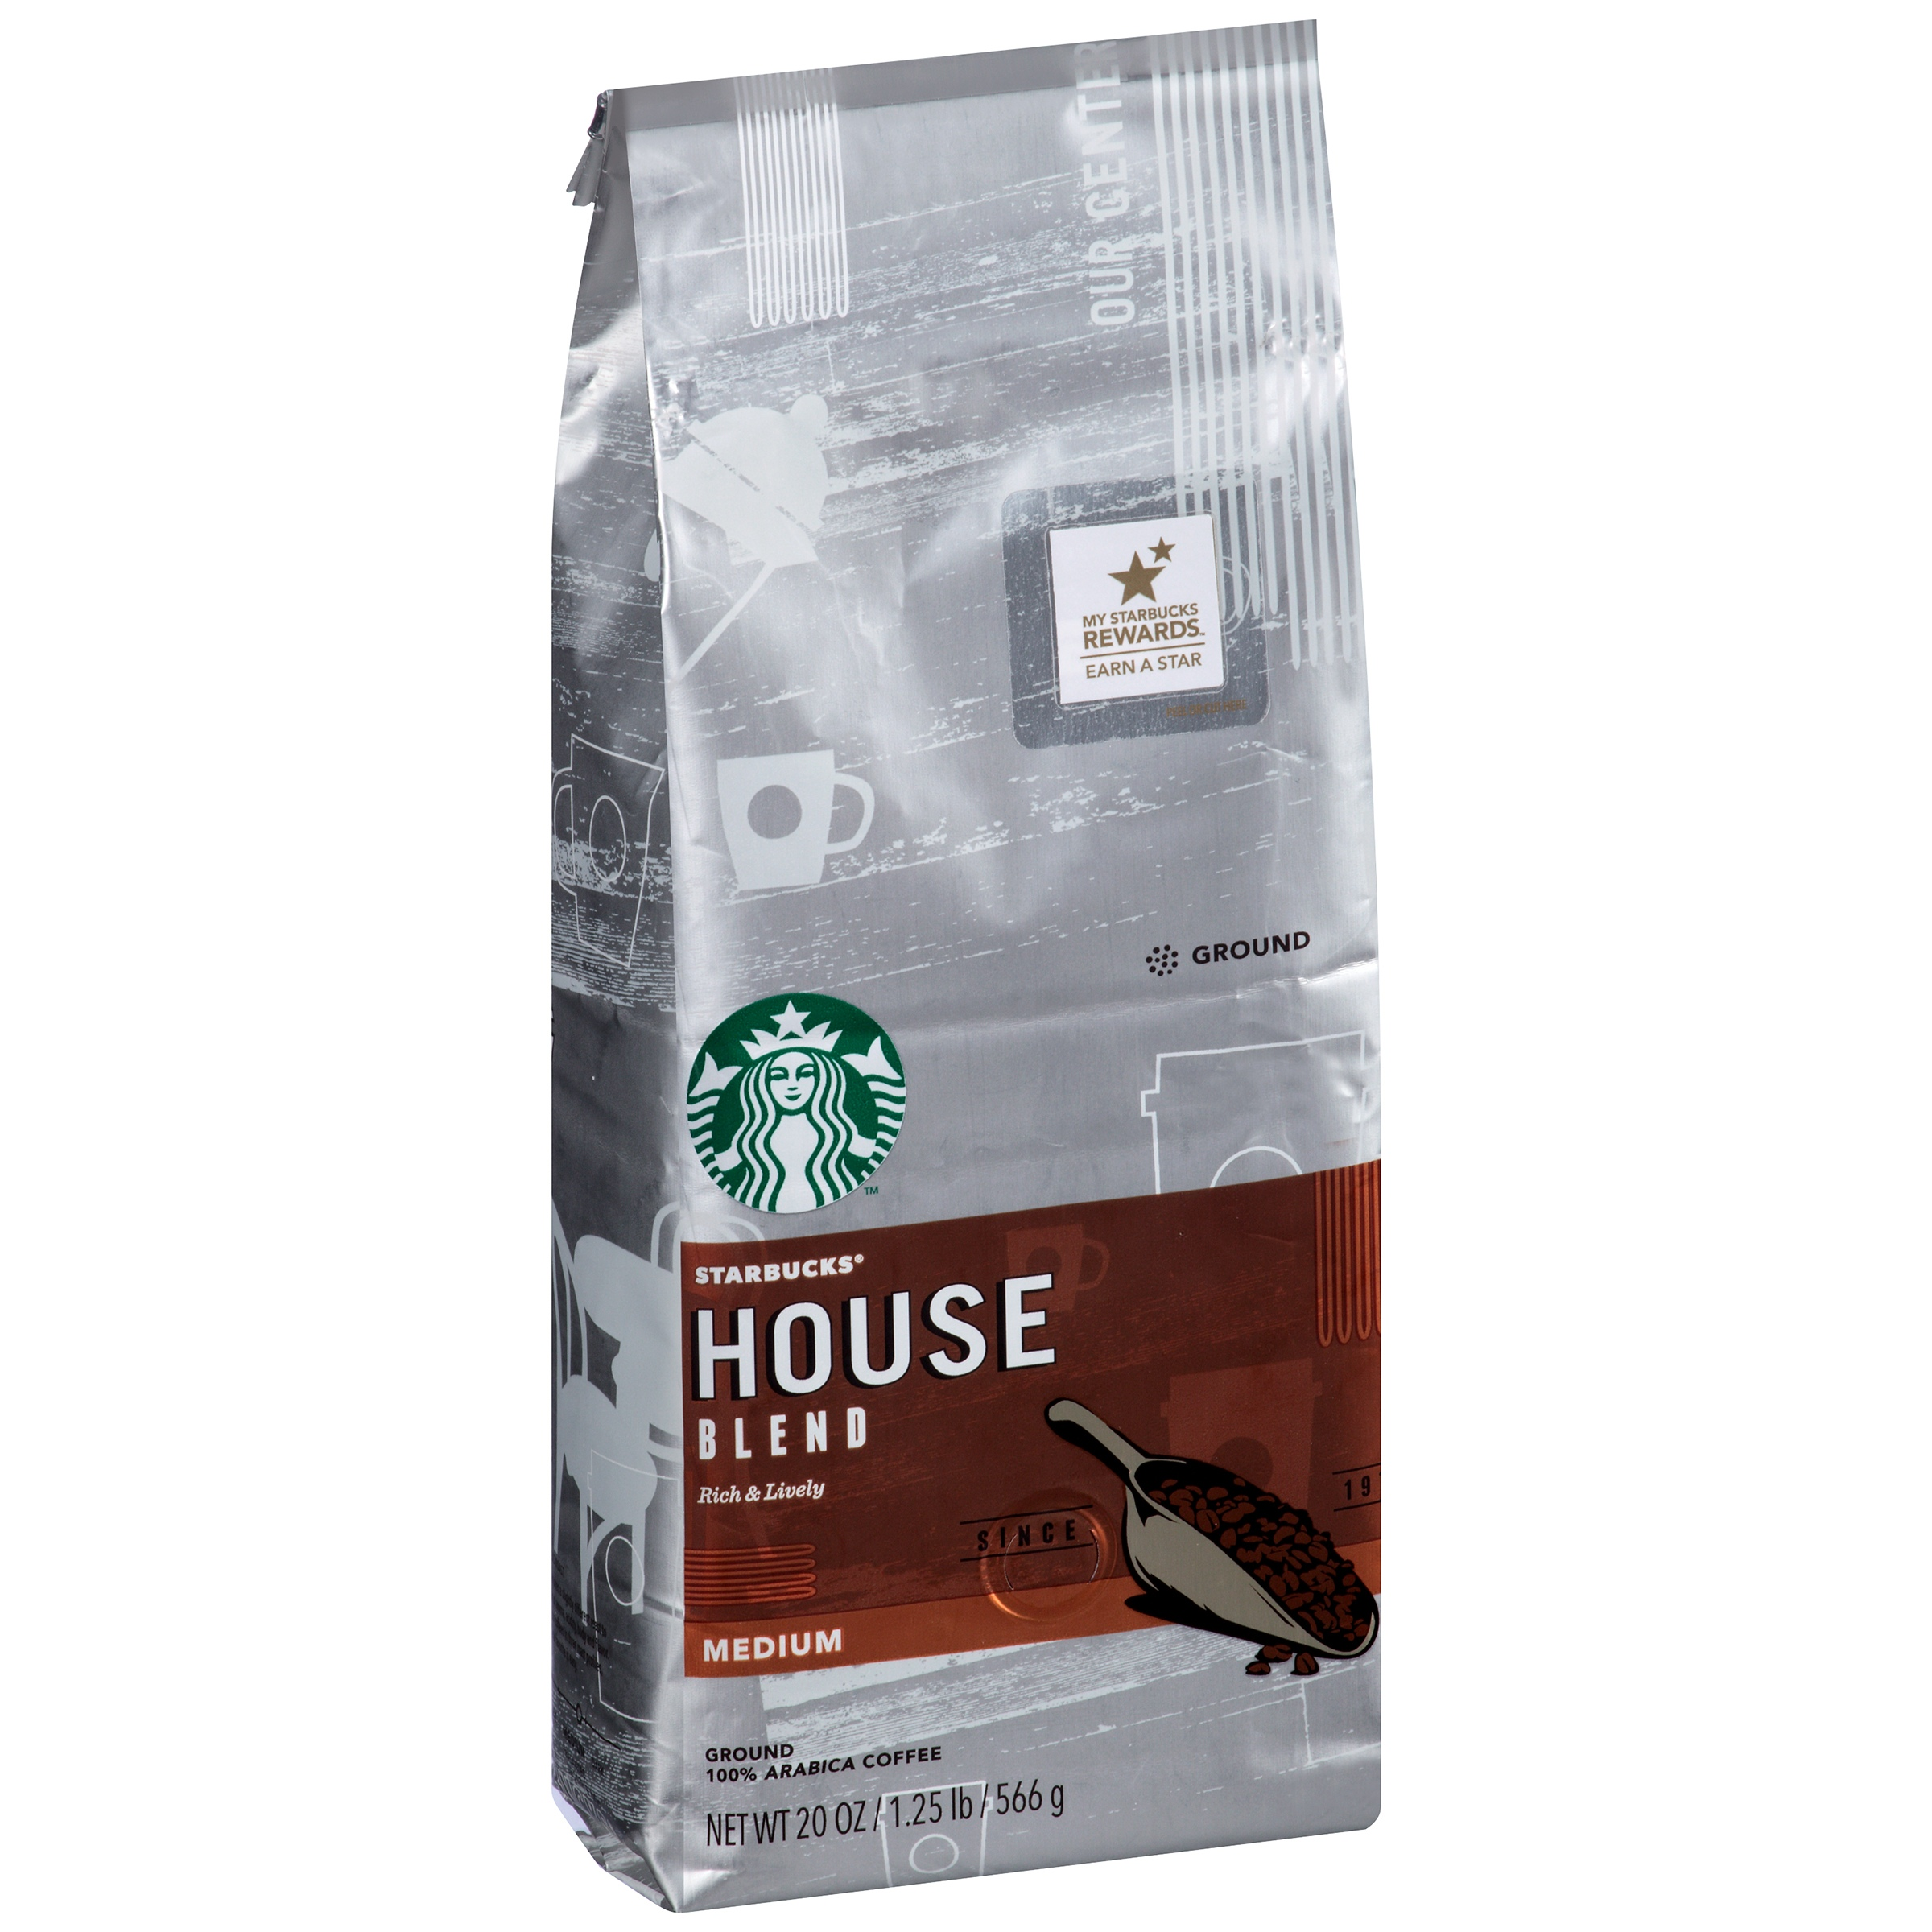 Starbucks House Blend Medium Ground Coffee, 20.0 OZ